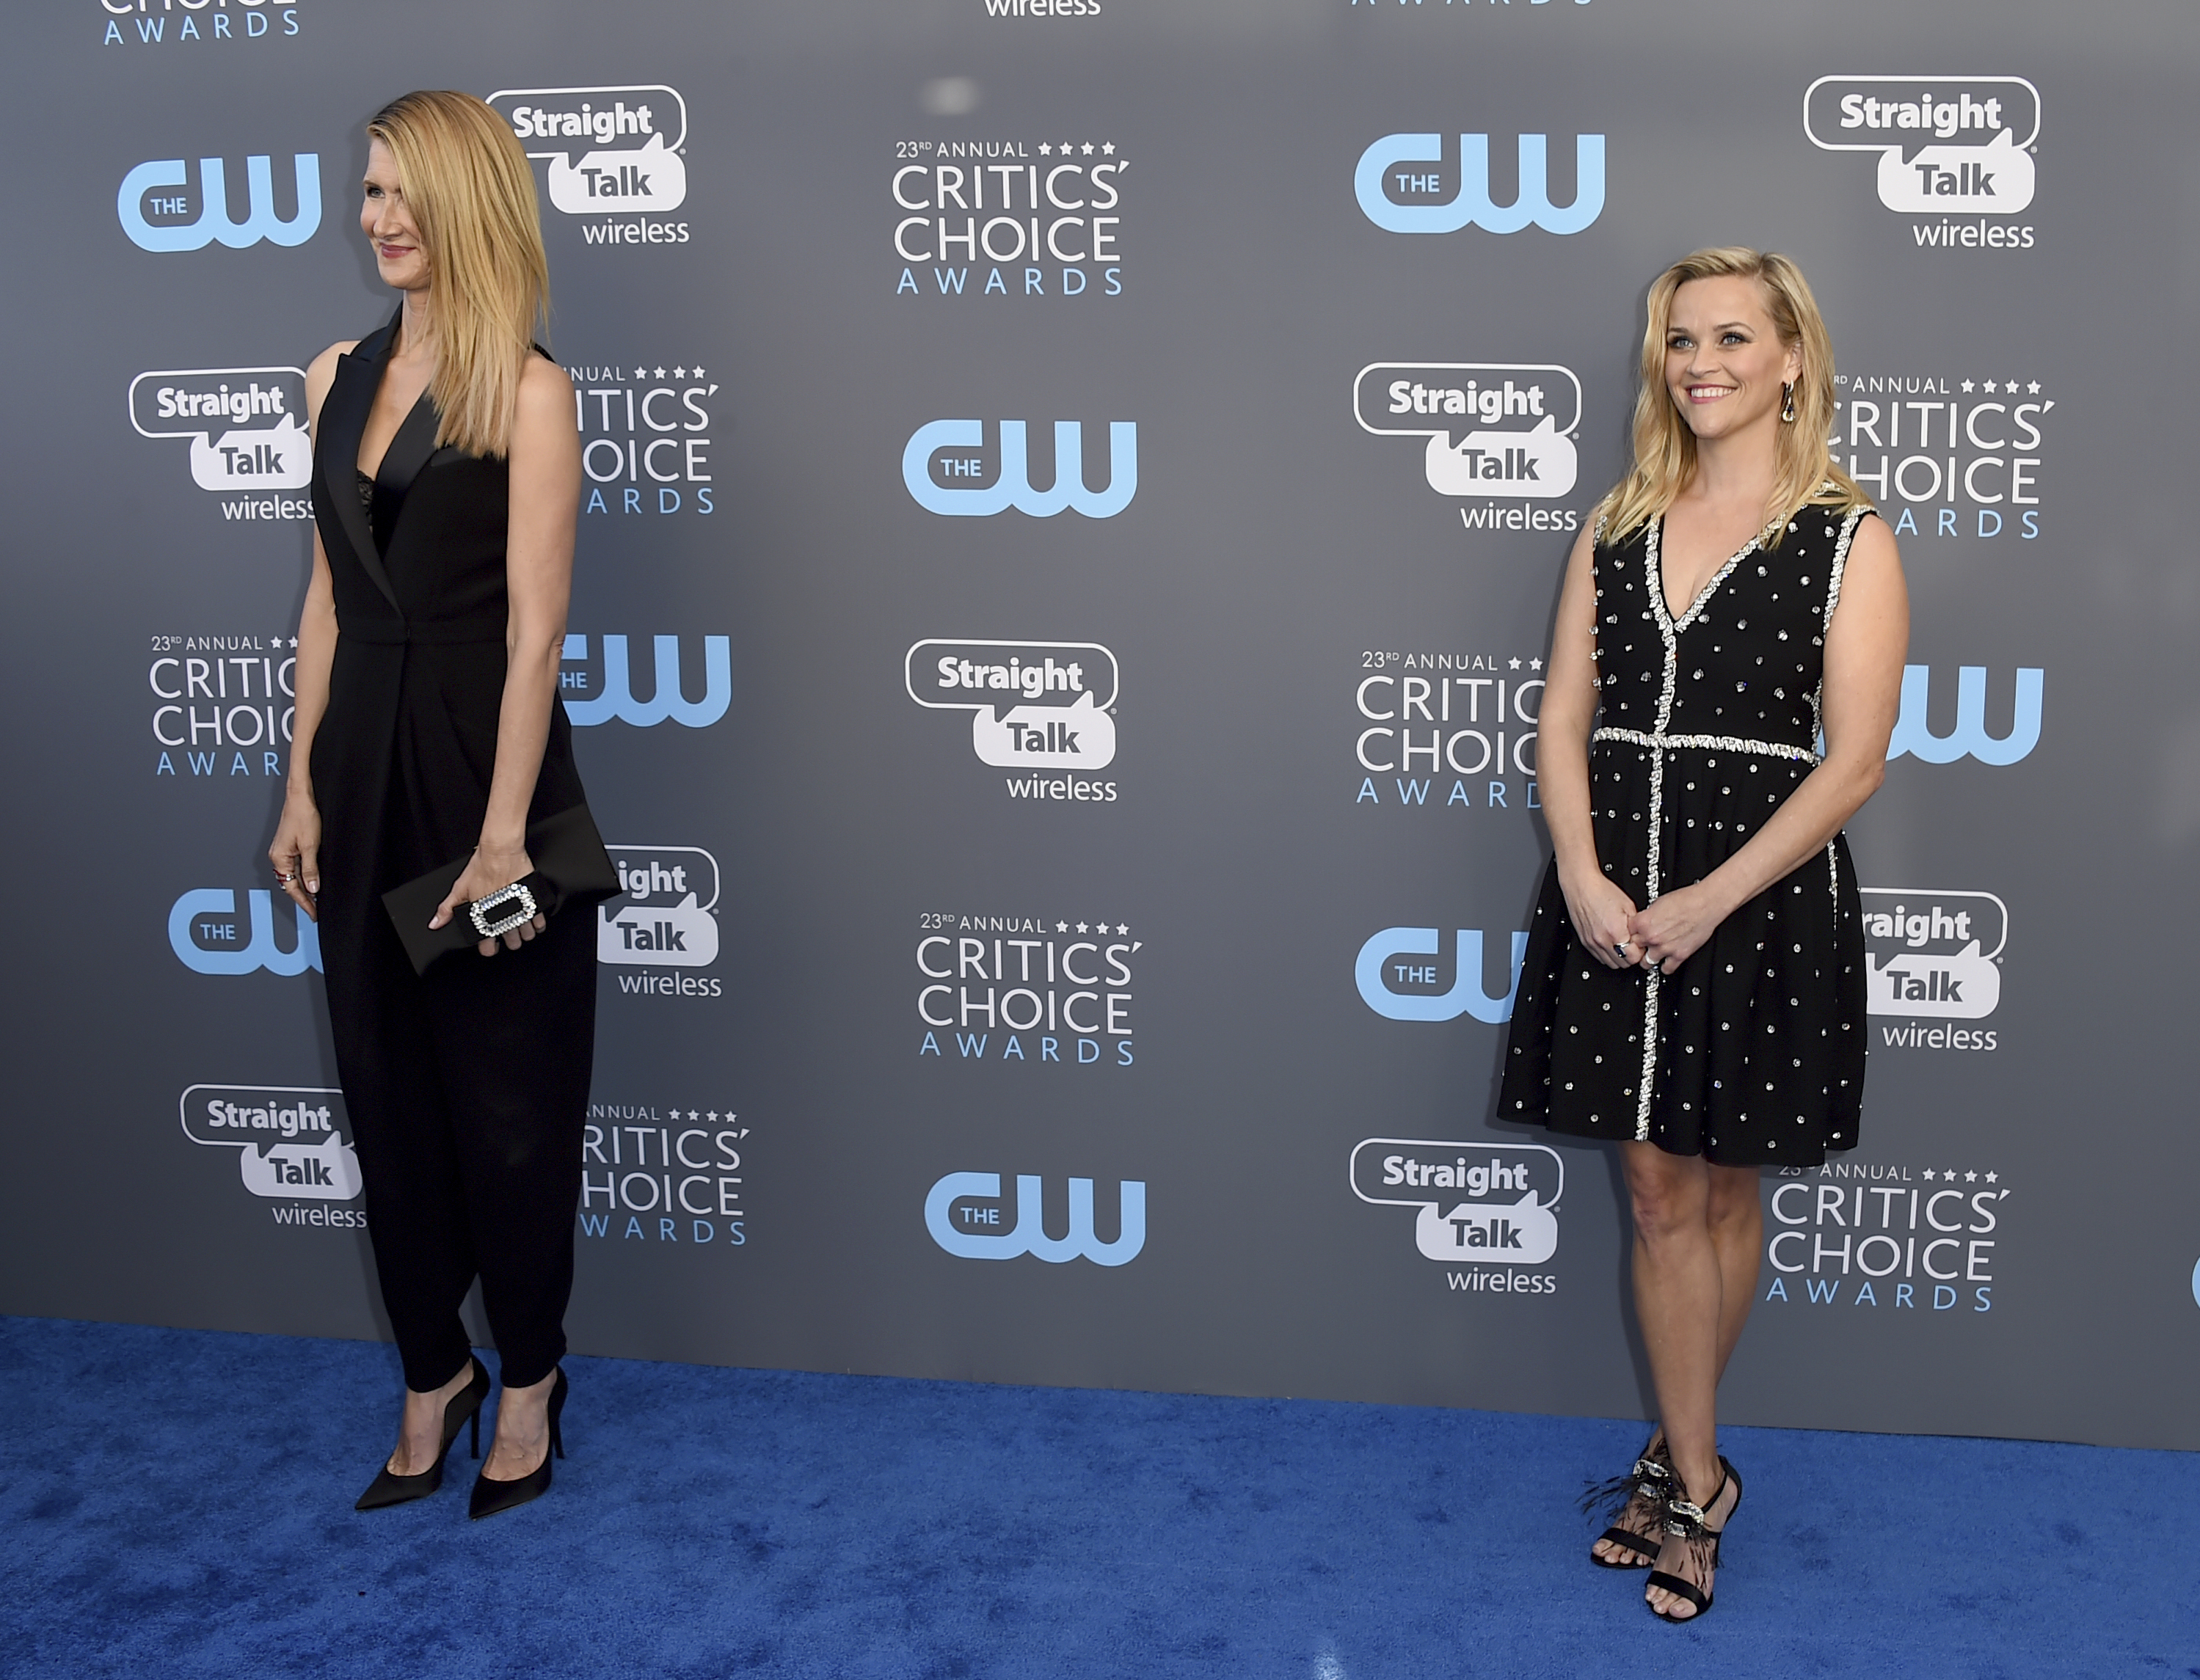 <div class='meta'><div class='origin-logo' data-origin='AP'></div><span class='caption-text' data-credit='Jordan Strauss/Invision/AP'>Lauren Dern, left, and Reese Witherspoon arrive at the 23rd annual Critics' Choice Awards at the Barker Hangar on Thursday, Jan. 11, 2018, in Santa Monica, Calif.</span></div>